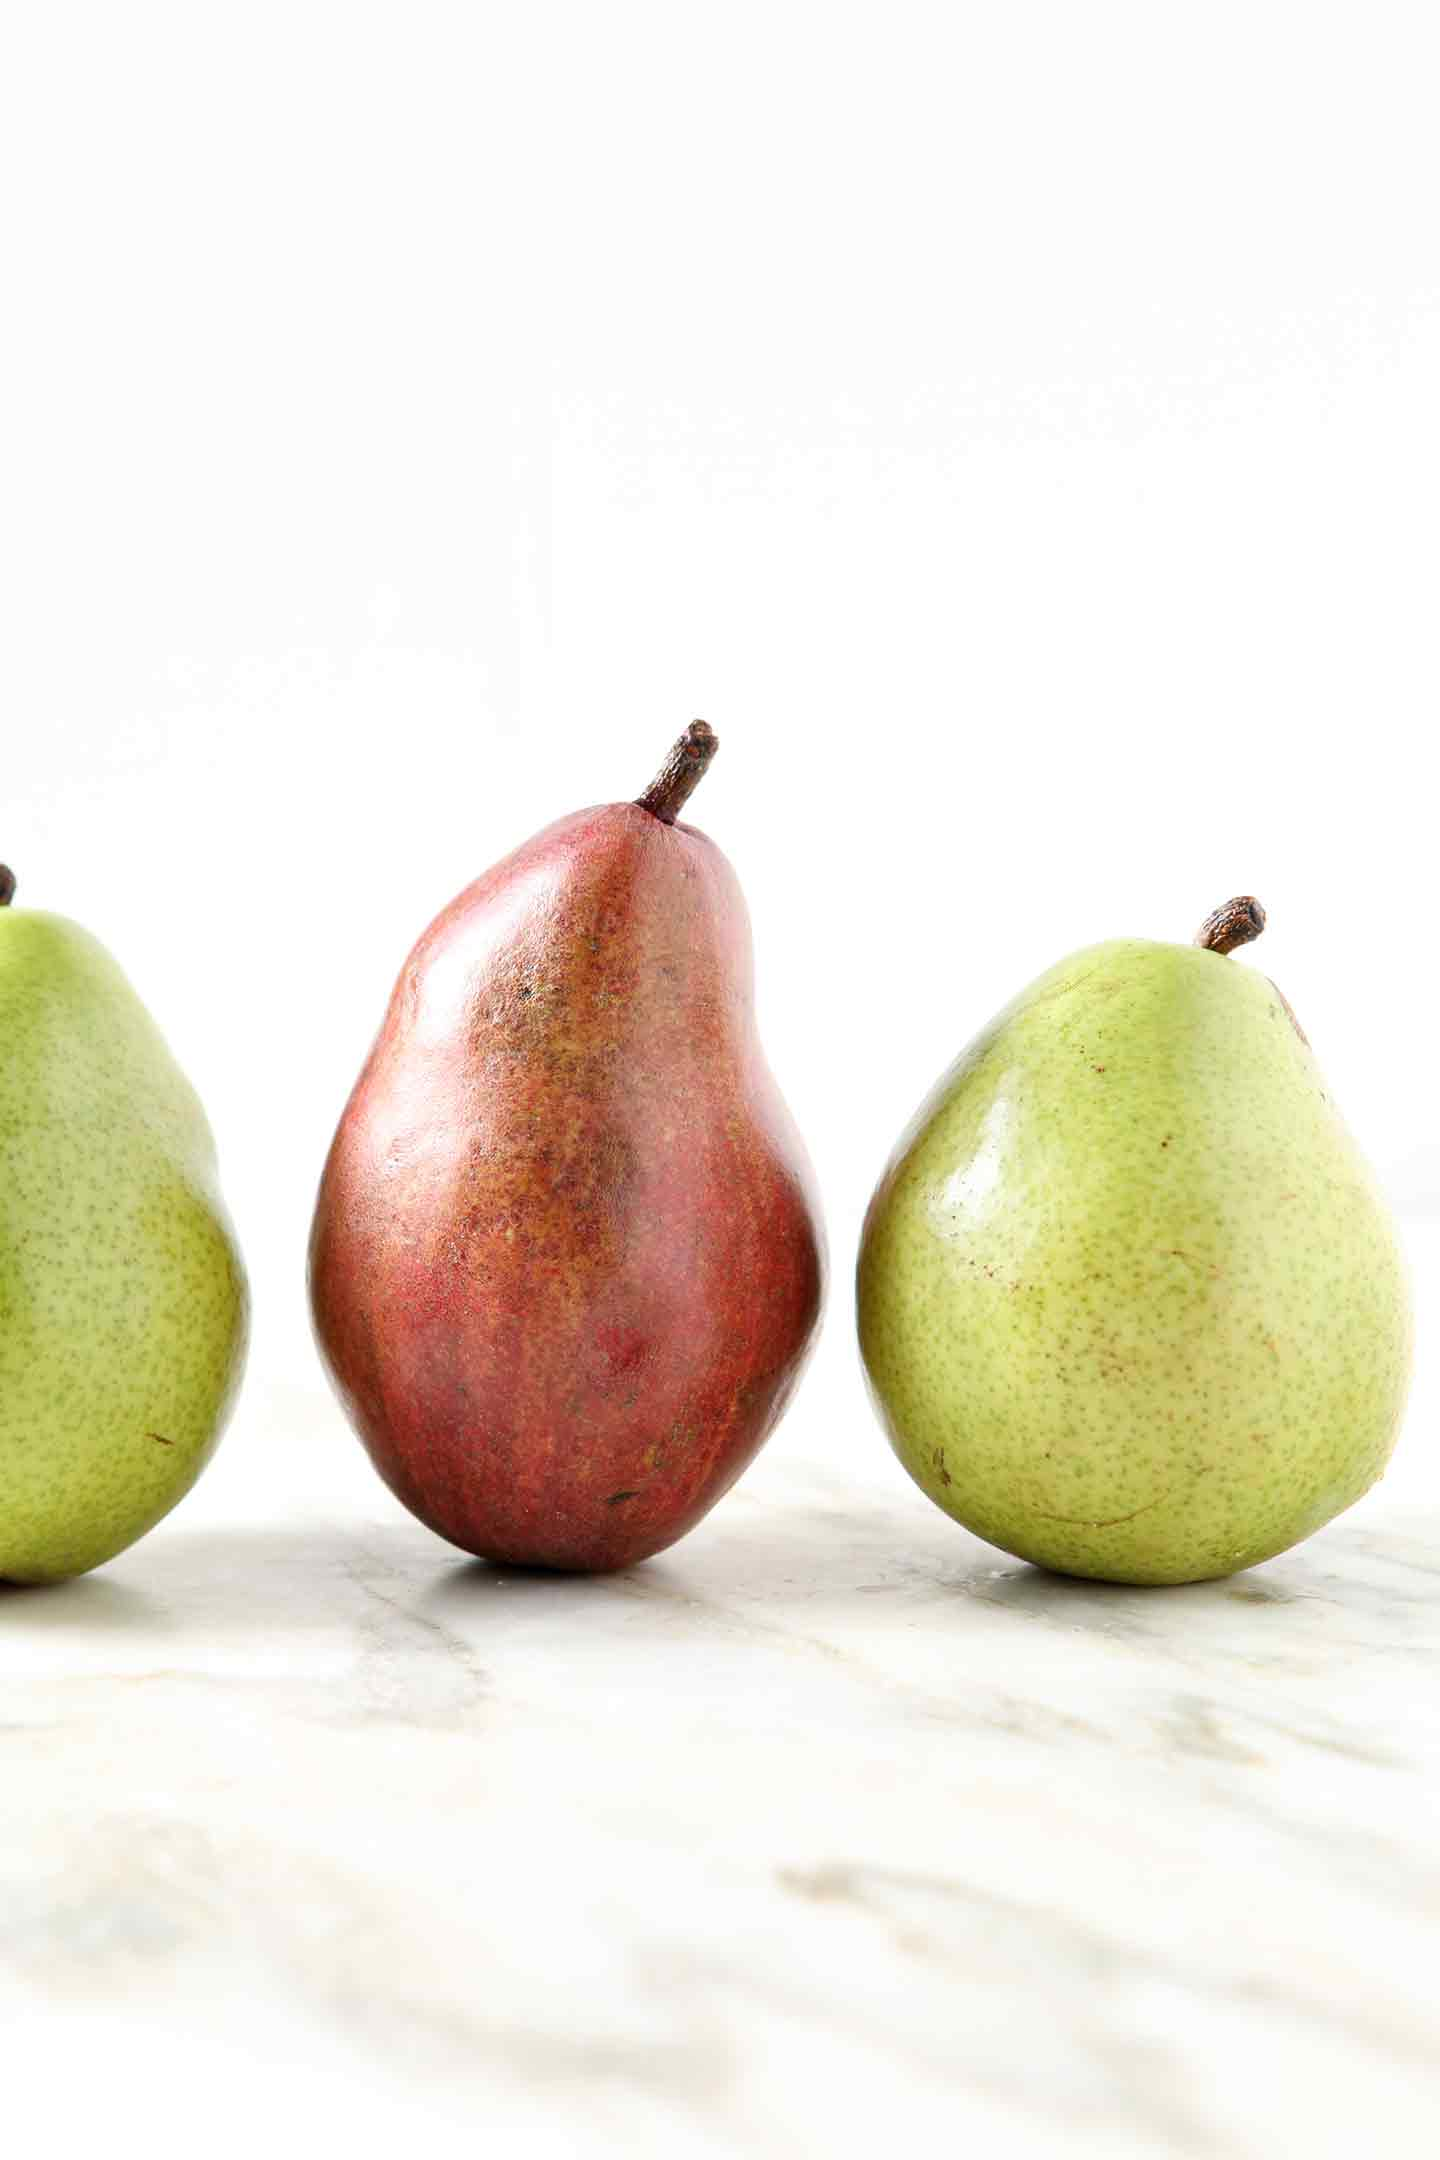 Three pears are lined up on a marble background